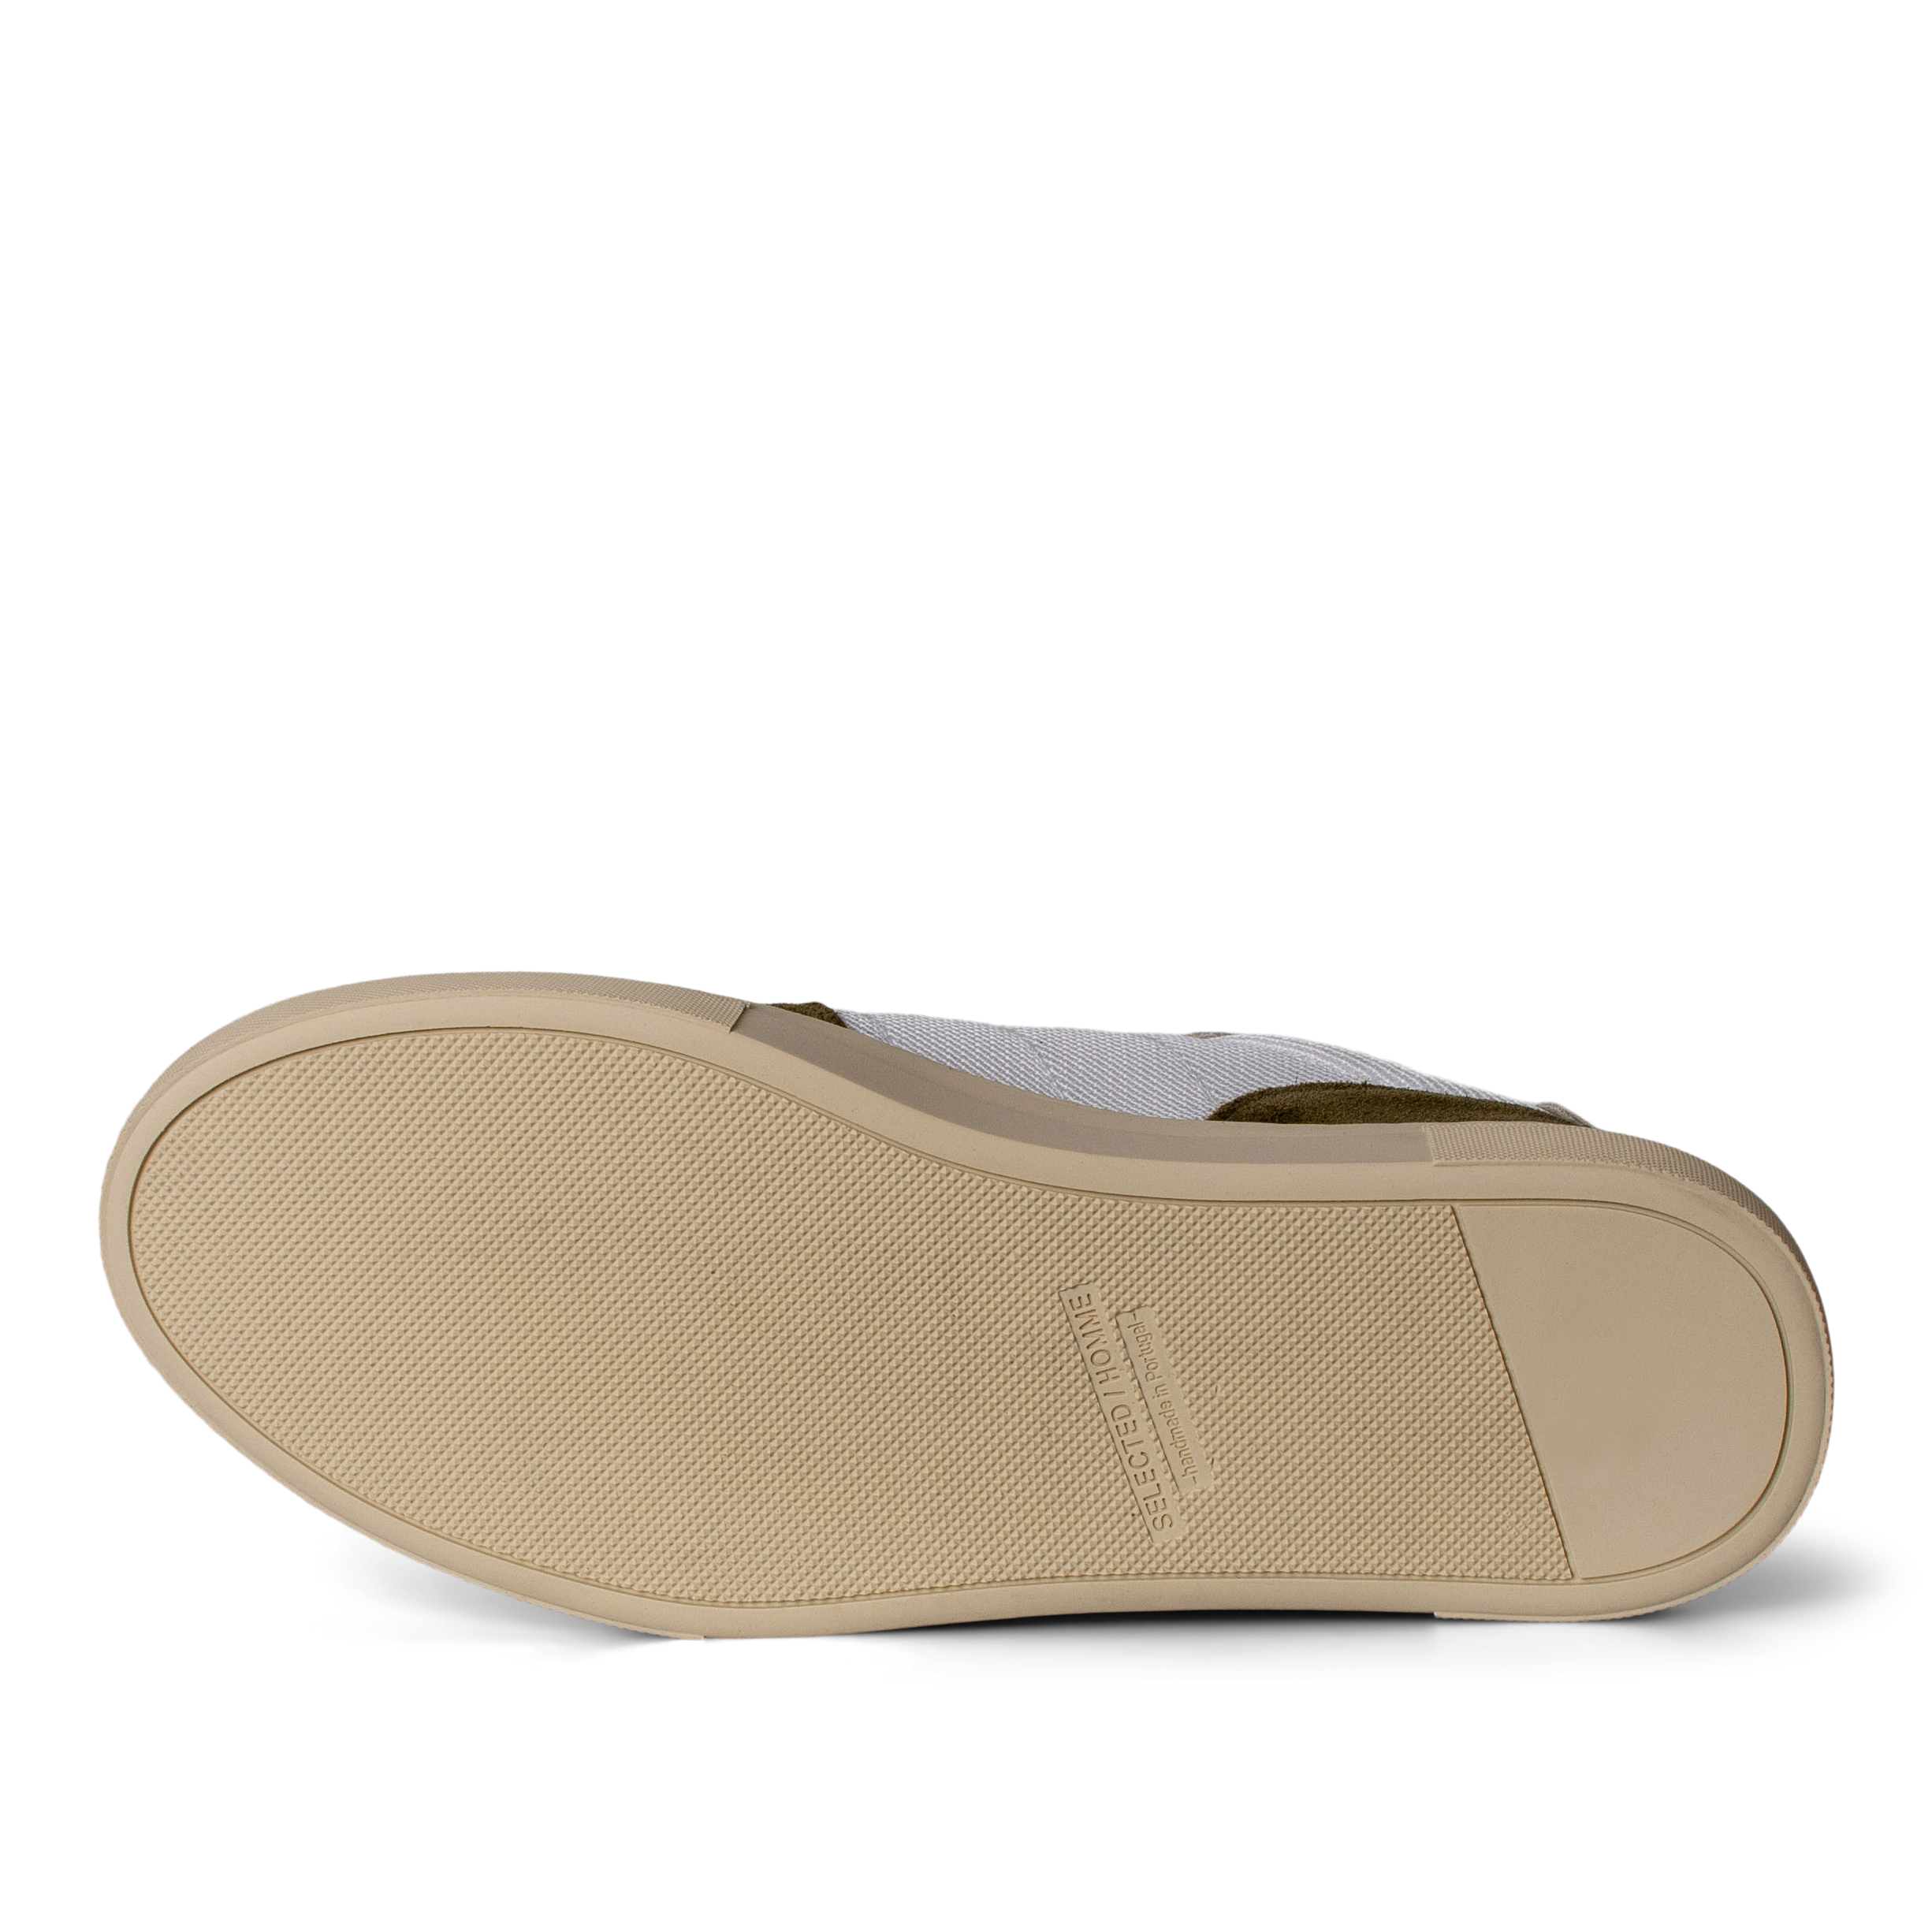 Selected Ruskinds sneakers, grape leaf, 44